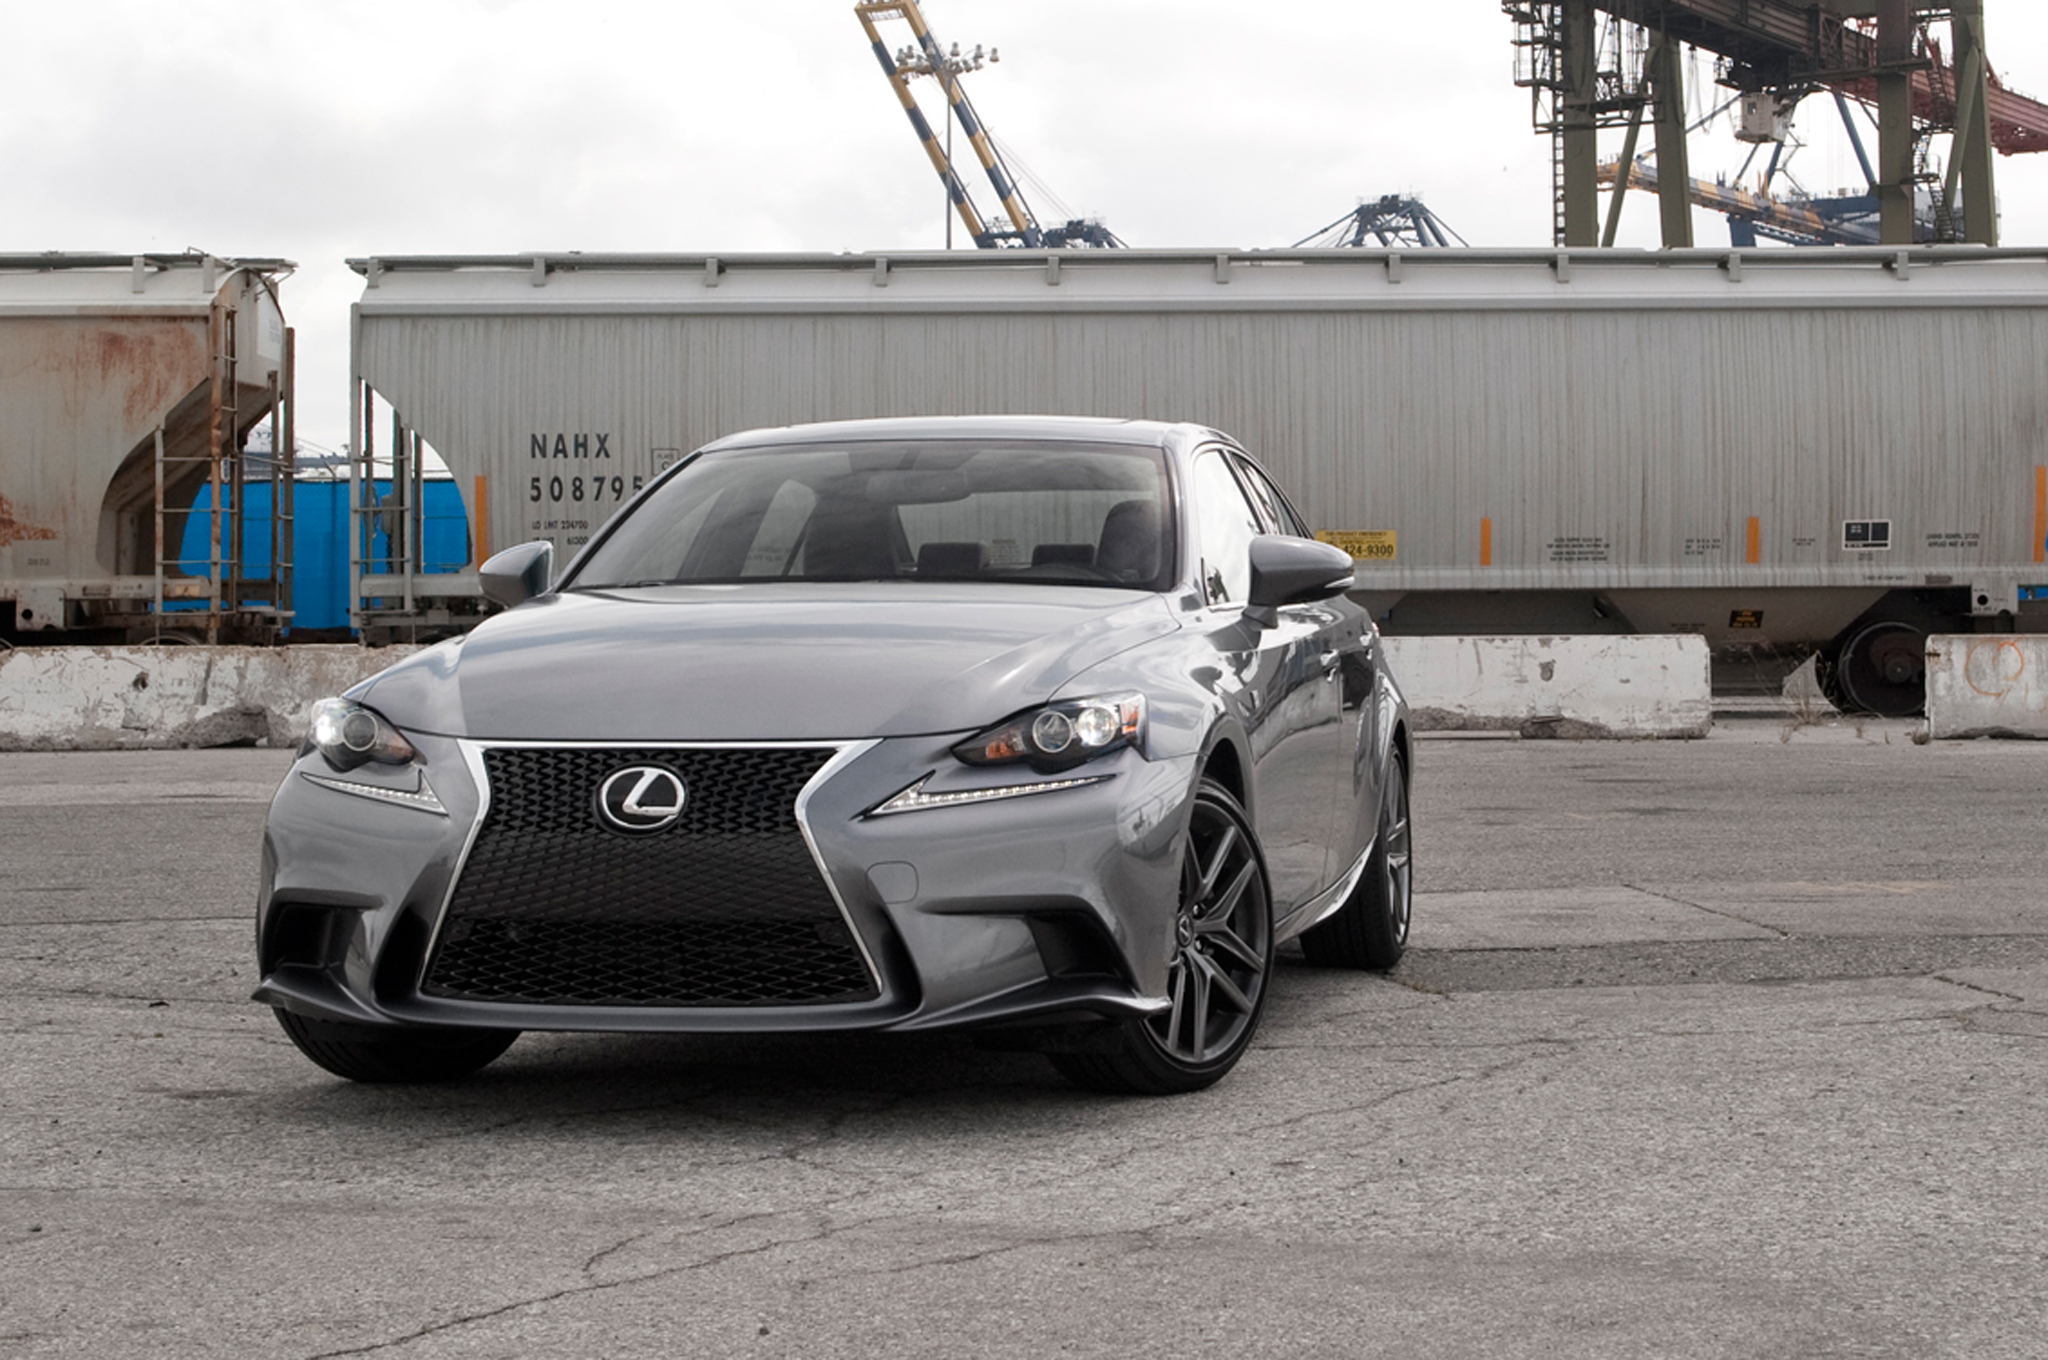 https://enthusiastnetwork.s3.amazonaws.com/uploads/sites/5/2013/10/2014-Lexus-IS-250-F-Sport-front-shot-gray1.jpg?impolicy=entryimage